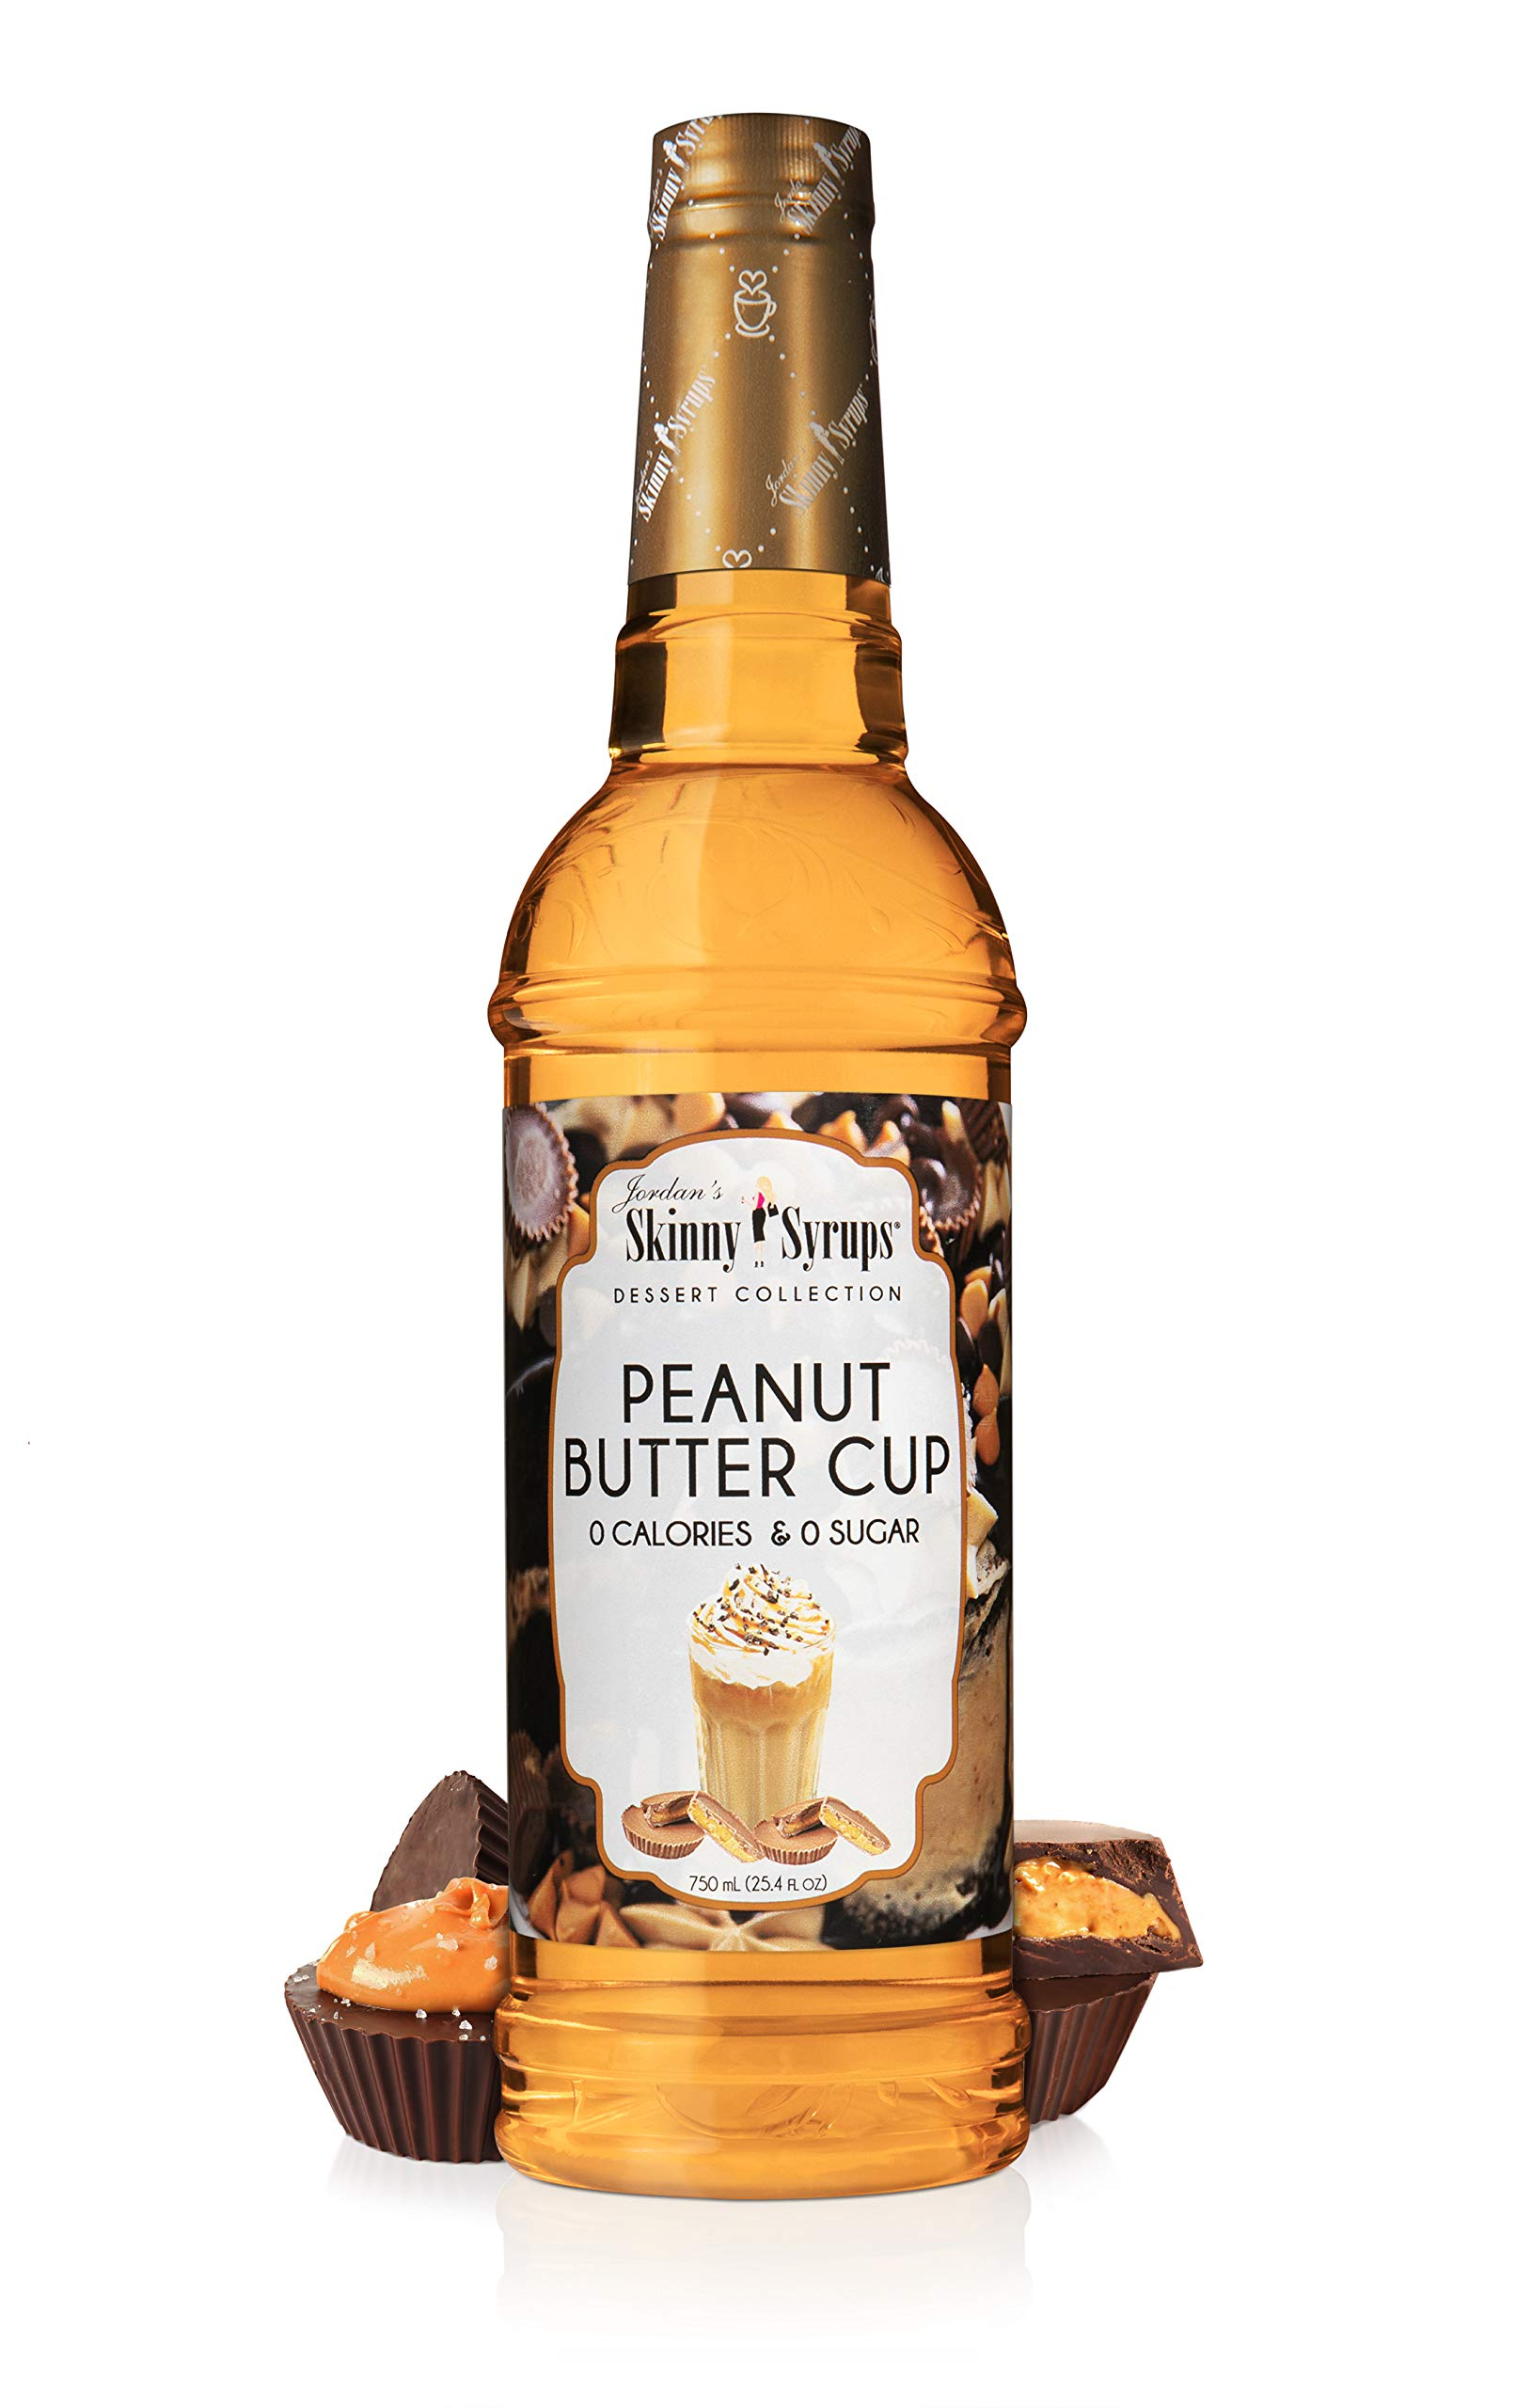 Jordan's Skinny Syrups Peanut Butter Cup, Sugar Free Flavoring Syrup, 25.4 Ounce Bottle